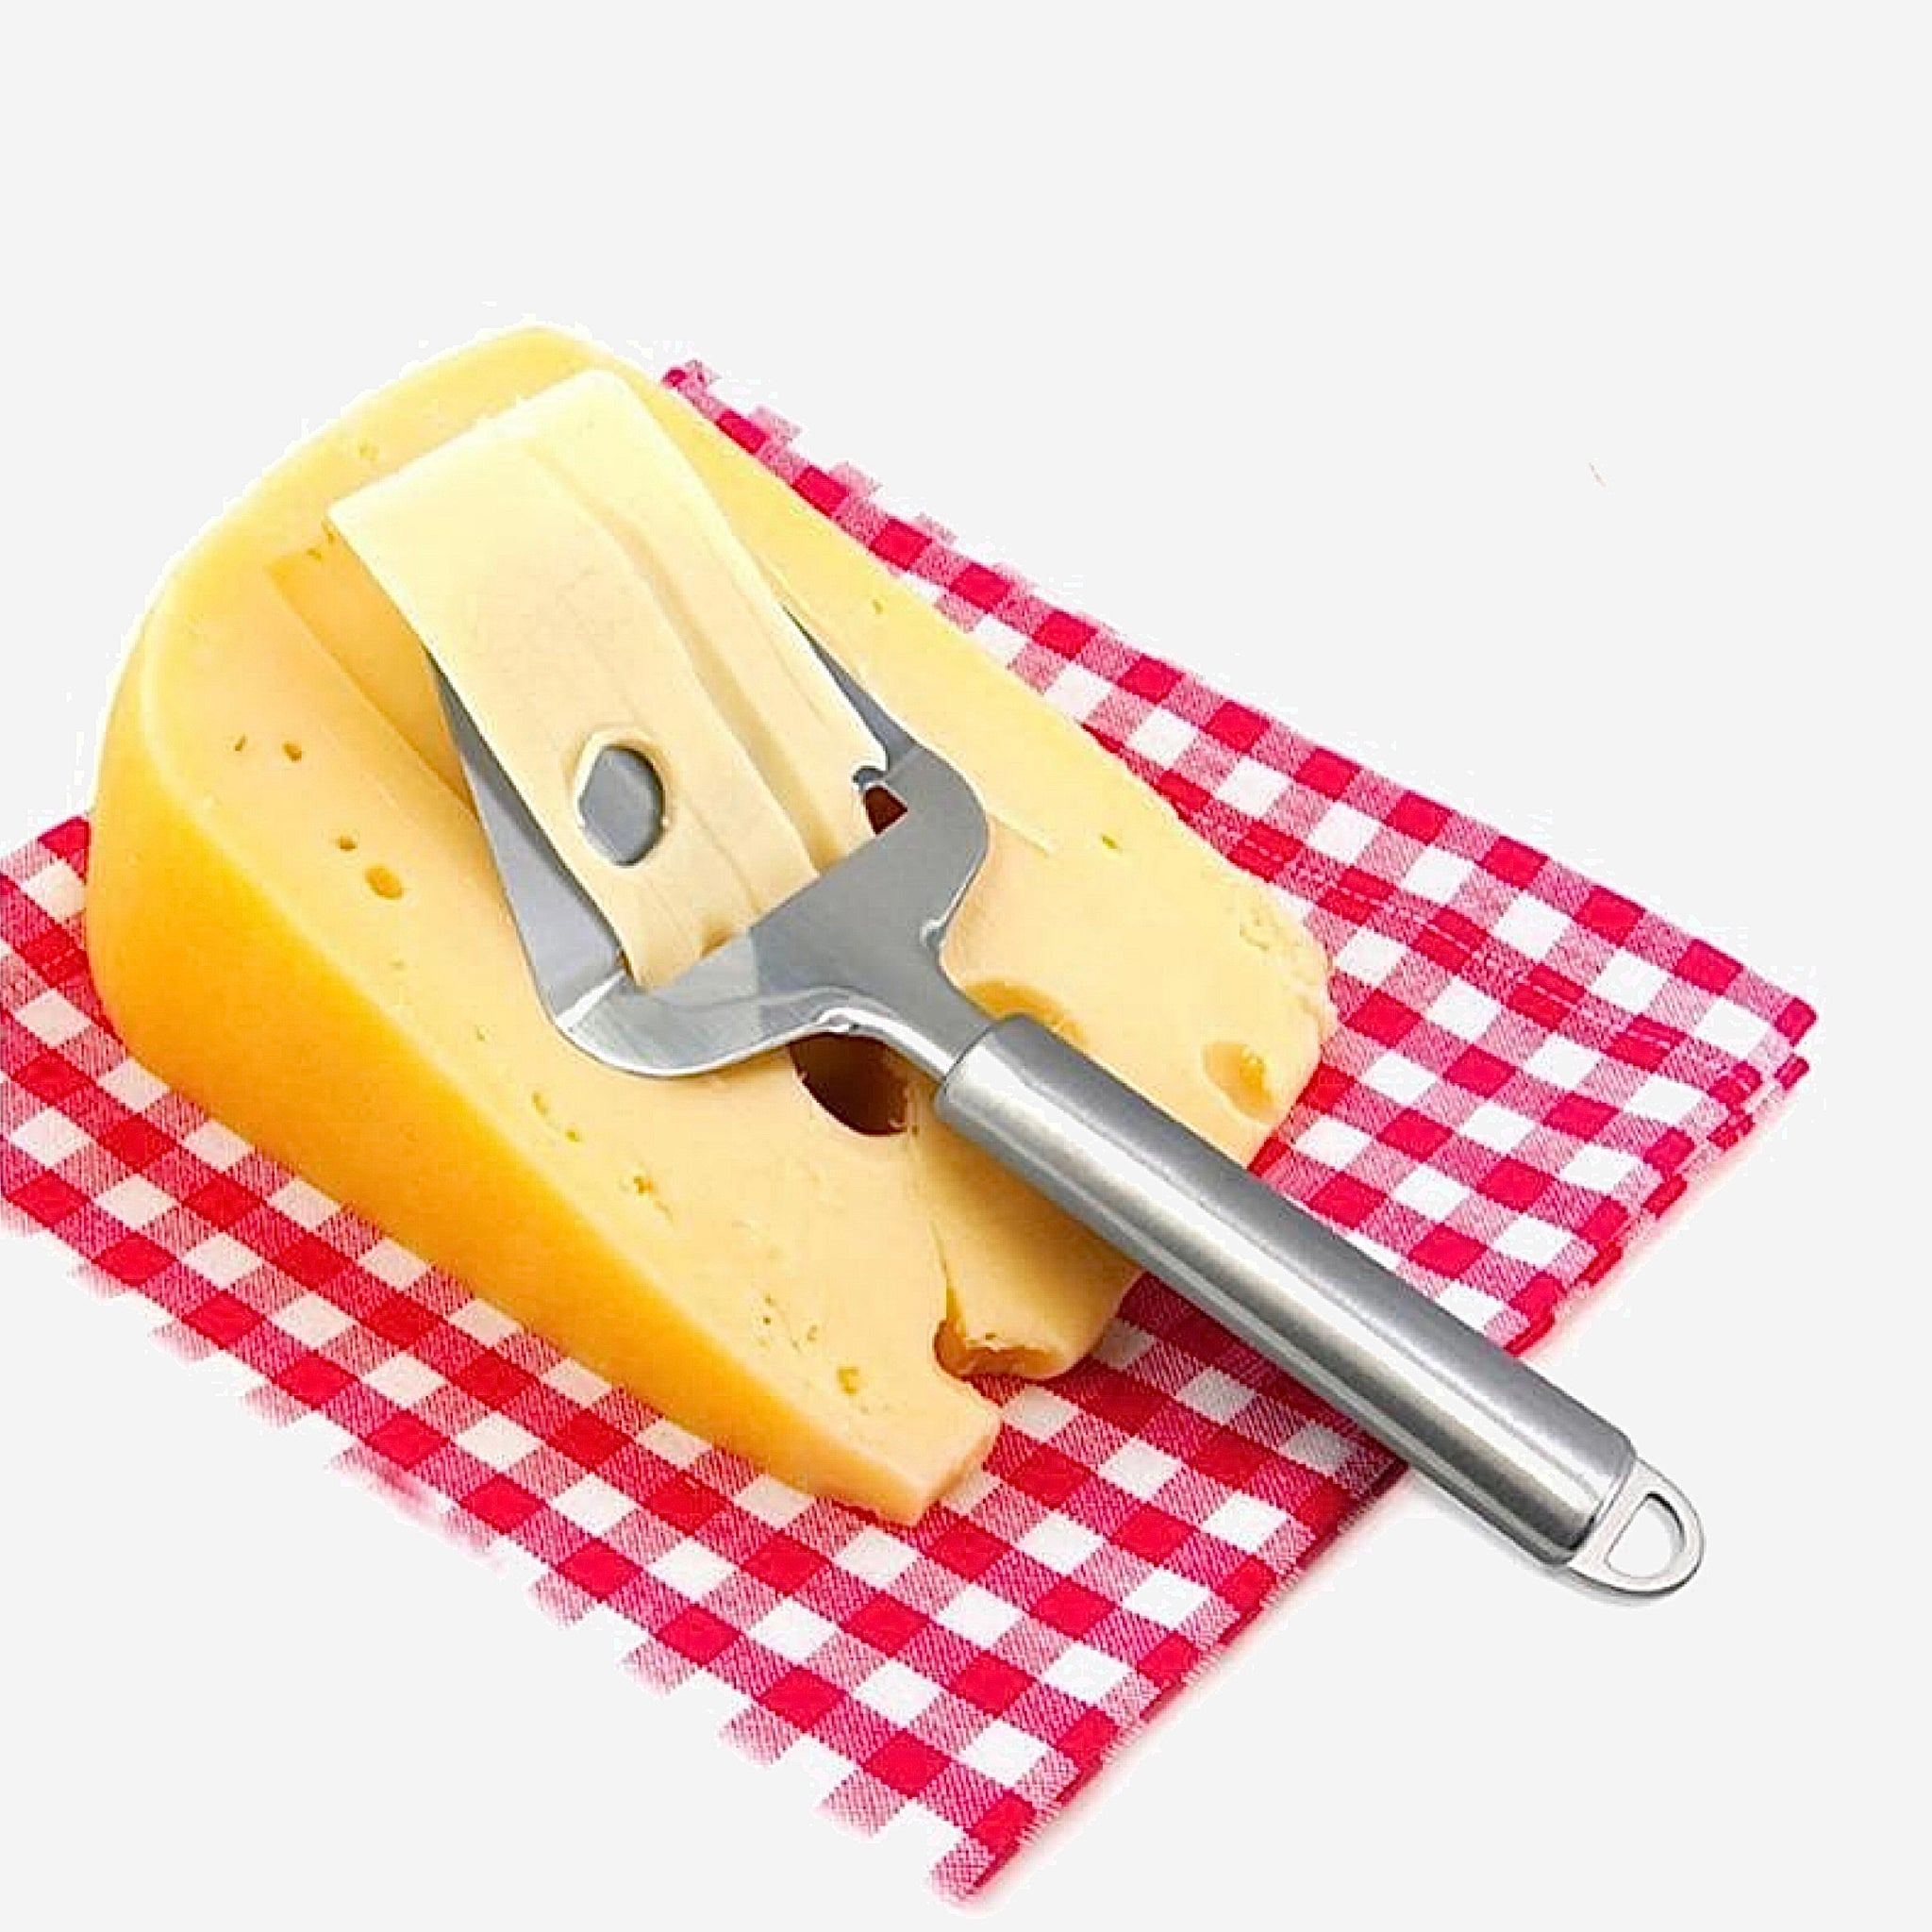 Stainless Steel Cheese Plane   Cheese Slicer Grater for Semi Hard and Hard Cheesees Pizza Server Trend